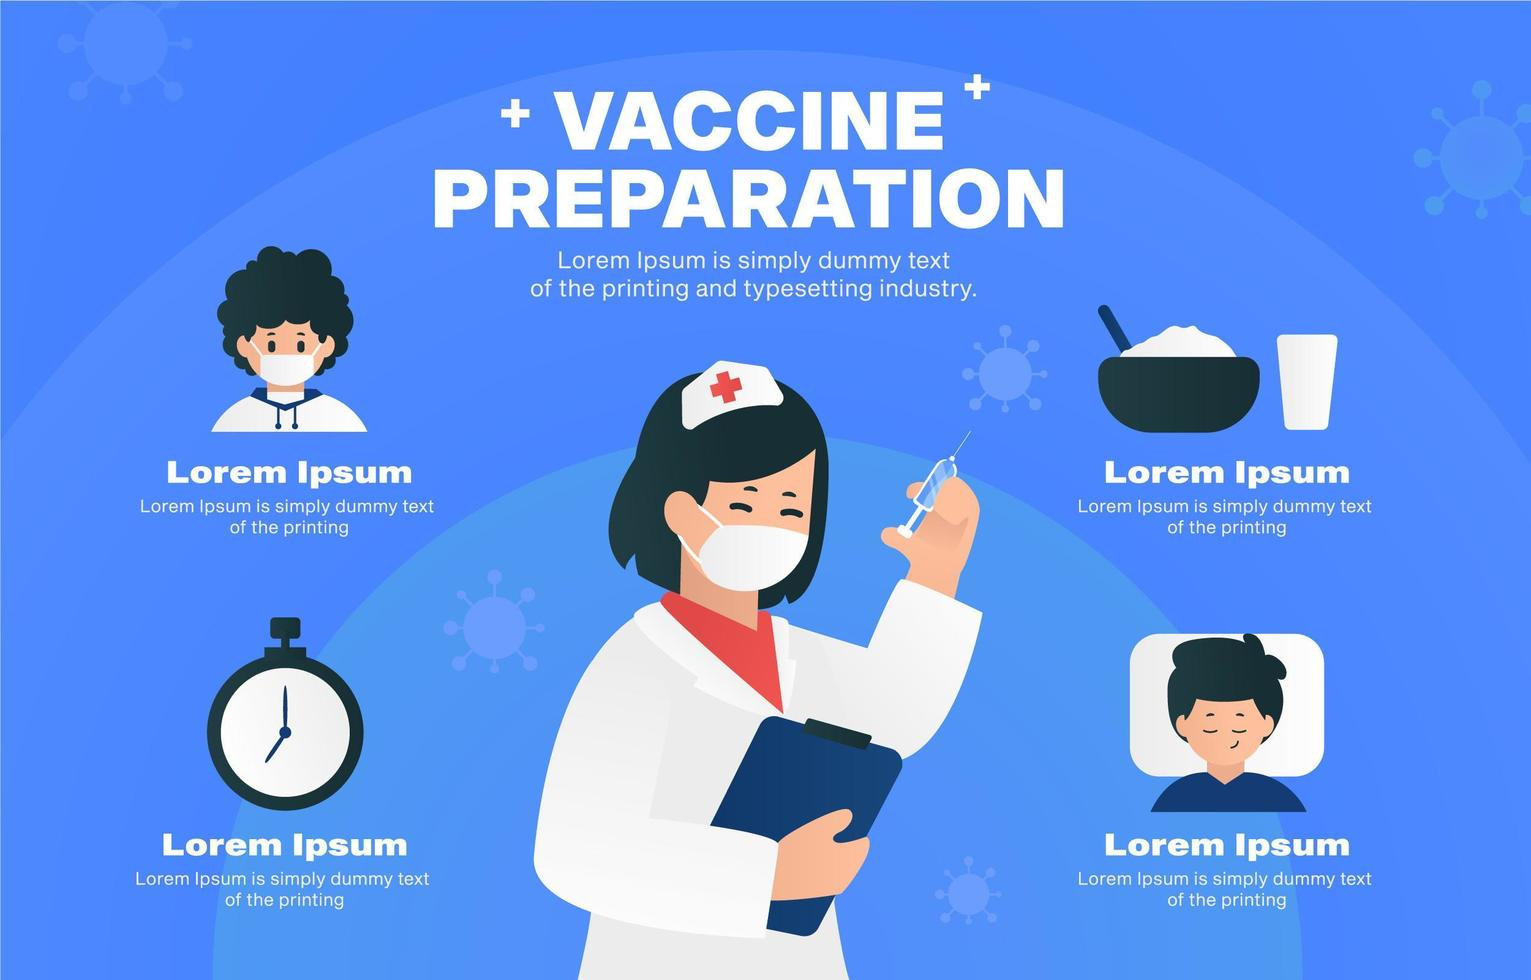 Vaccine Preparation Step Infographic Template vector